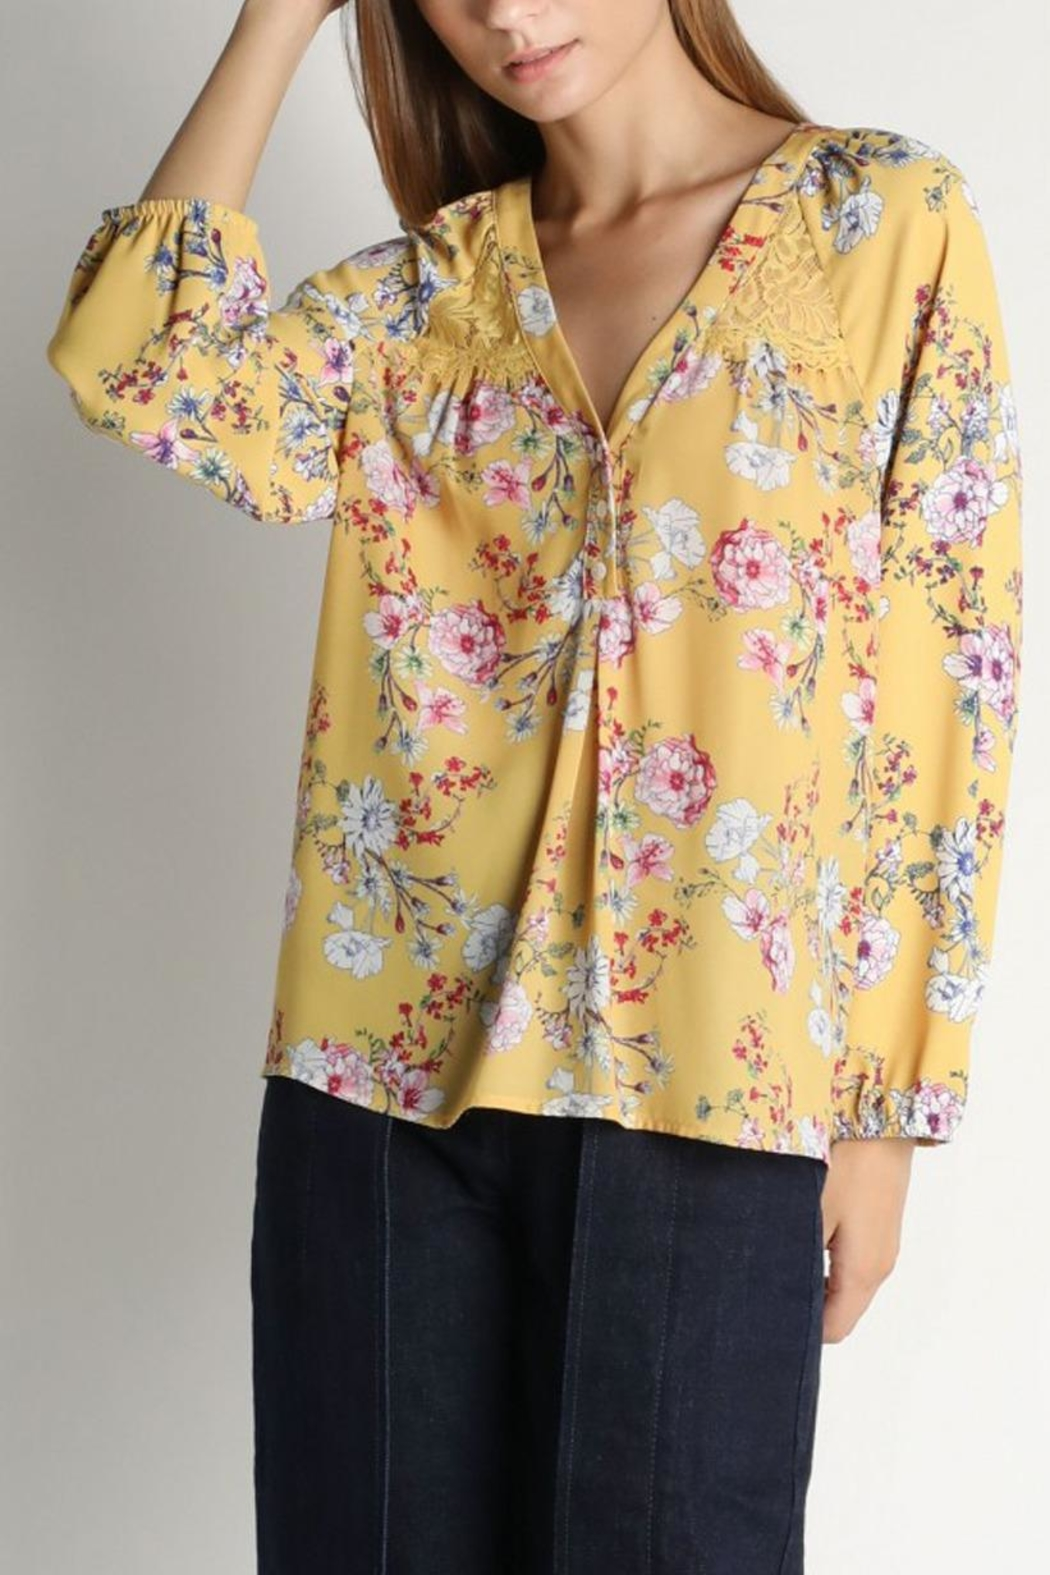 Skies Are Blue Floral Lacey Blouse - Main Image